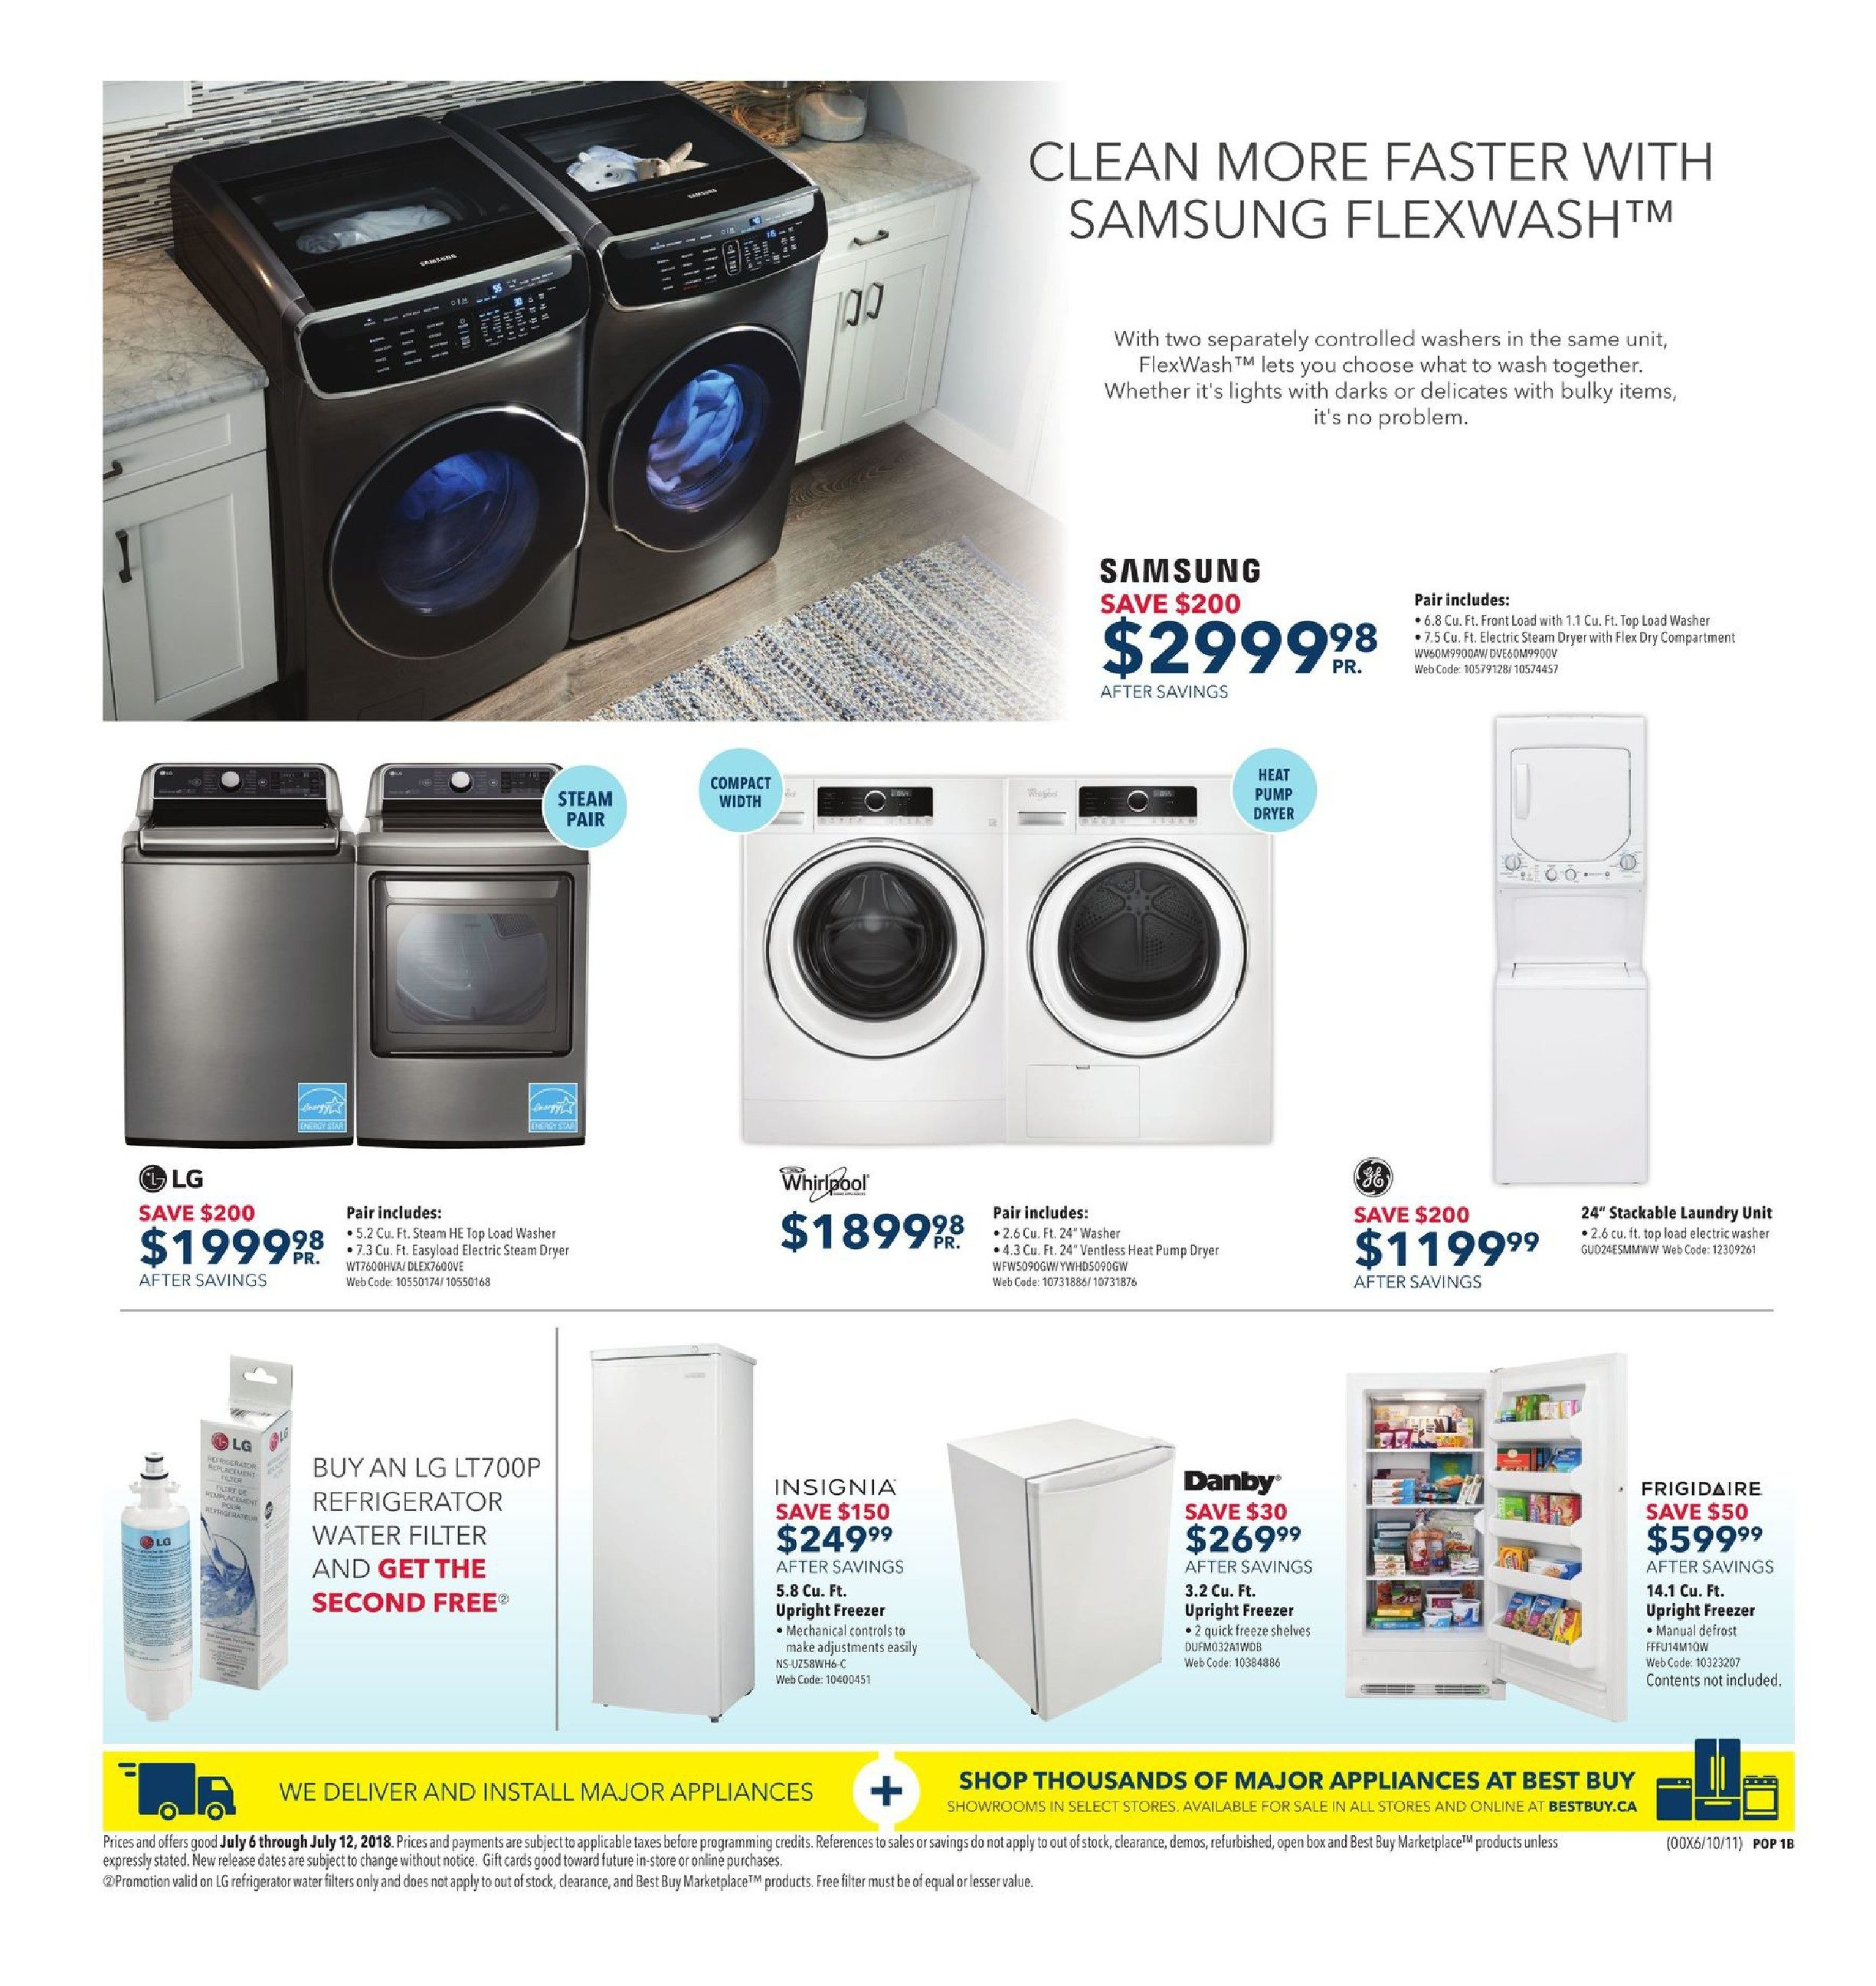 Best buy weekly flyer weekly hot tech at even hotter savings best buy weekly flyer weekly hot tech at even hotter savings jul 6 12 redflagdeals fandeluxe Gallery